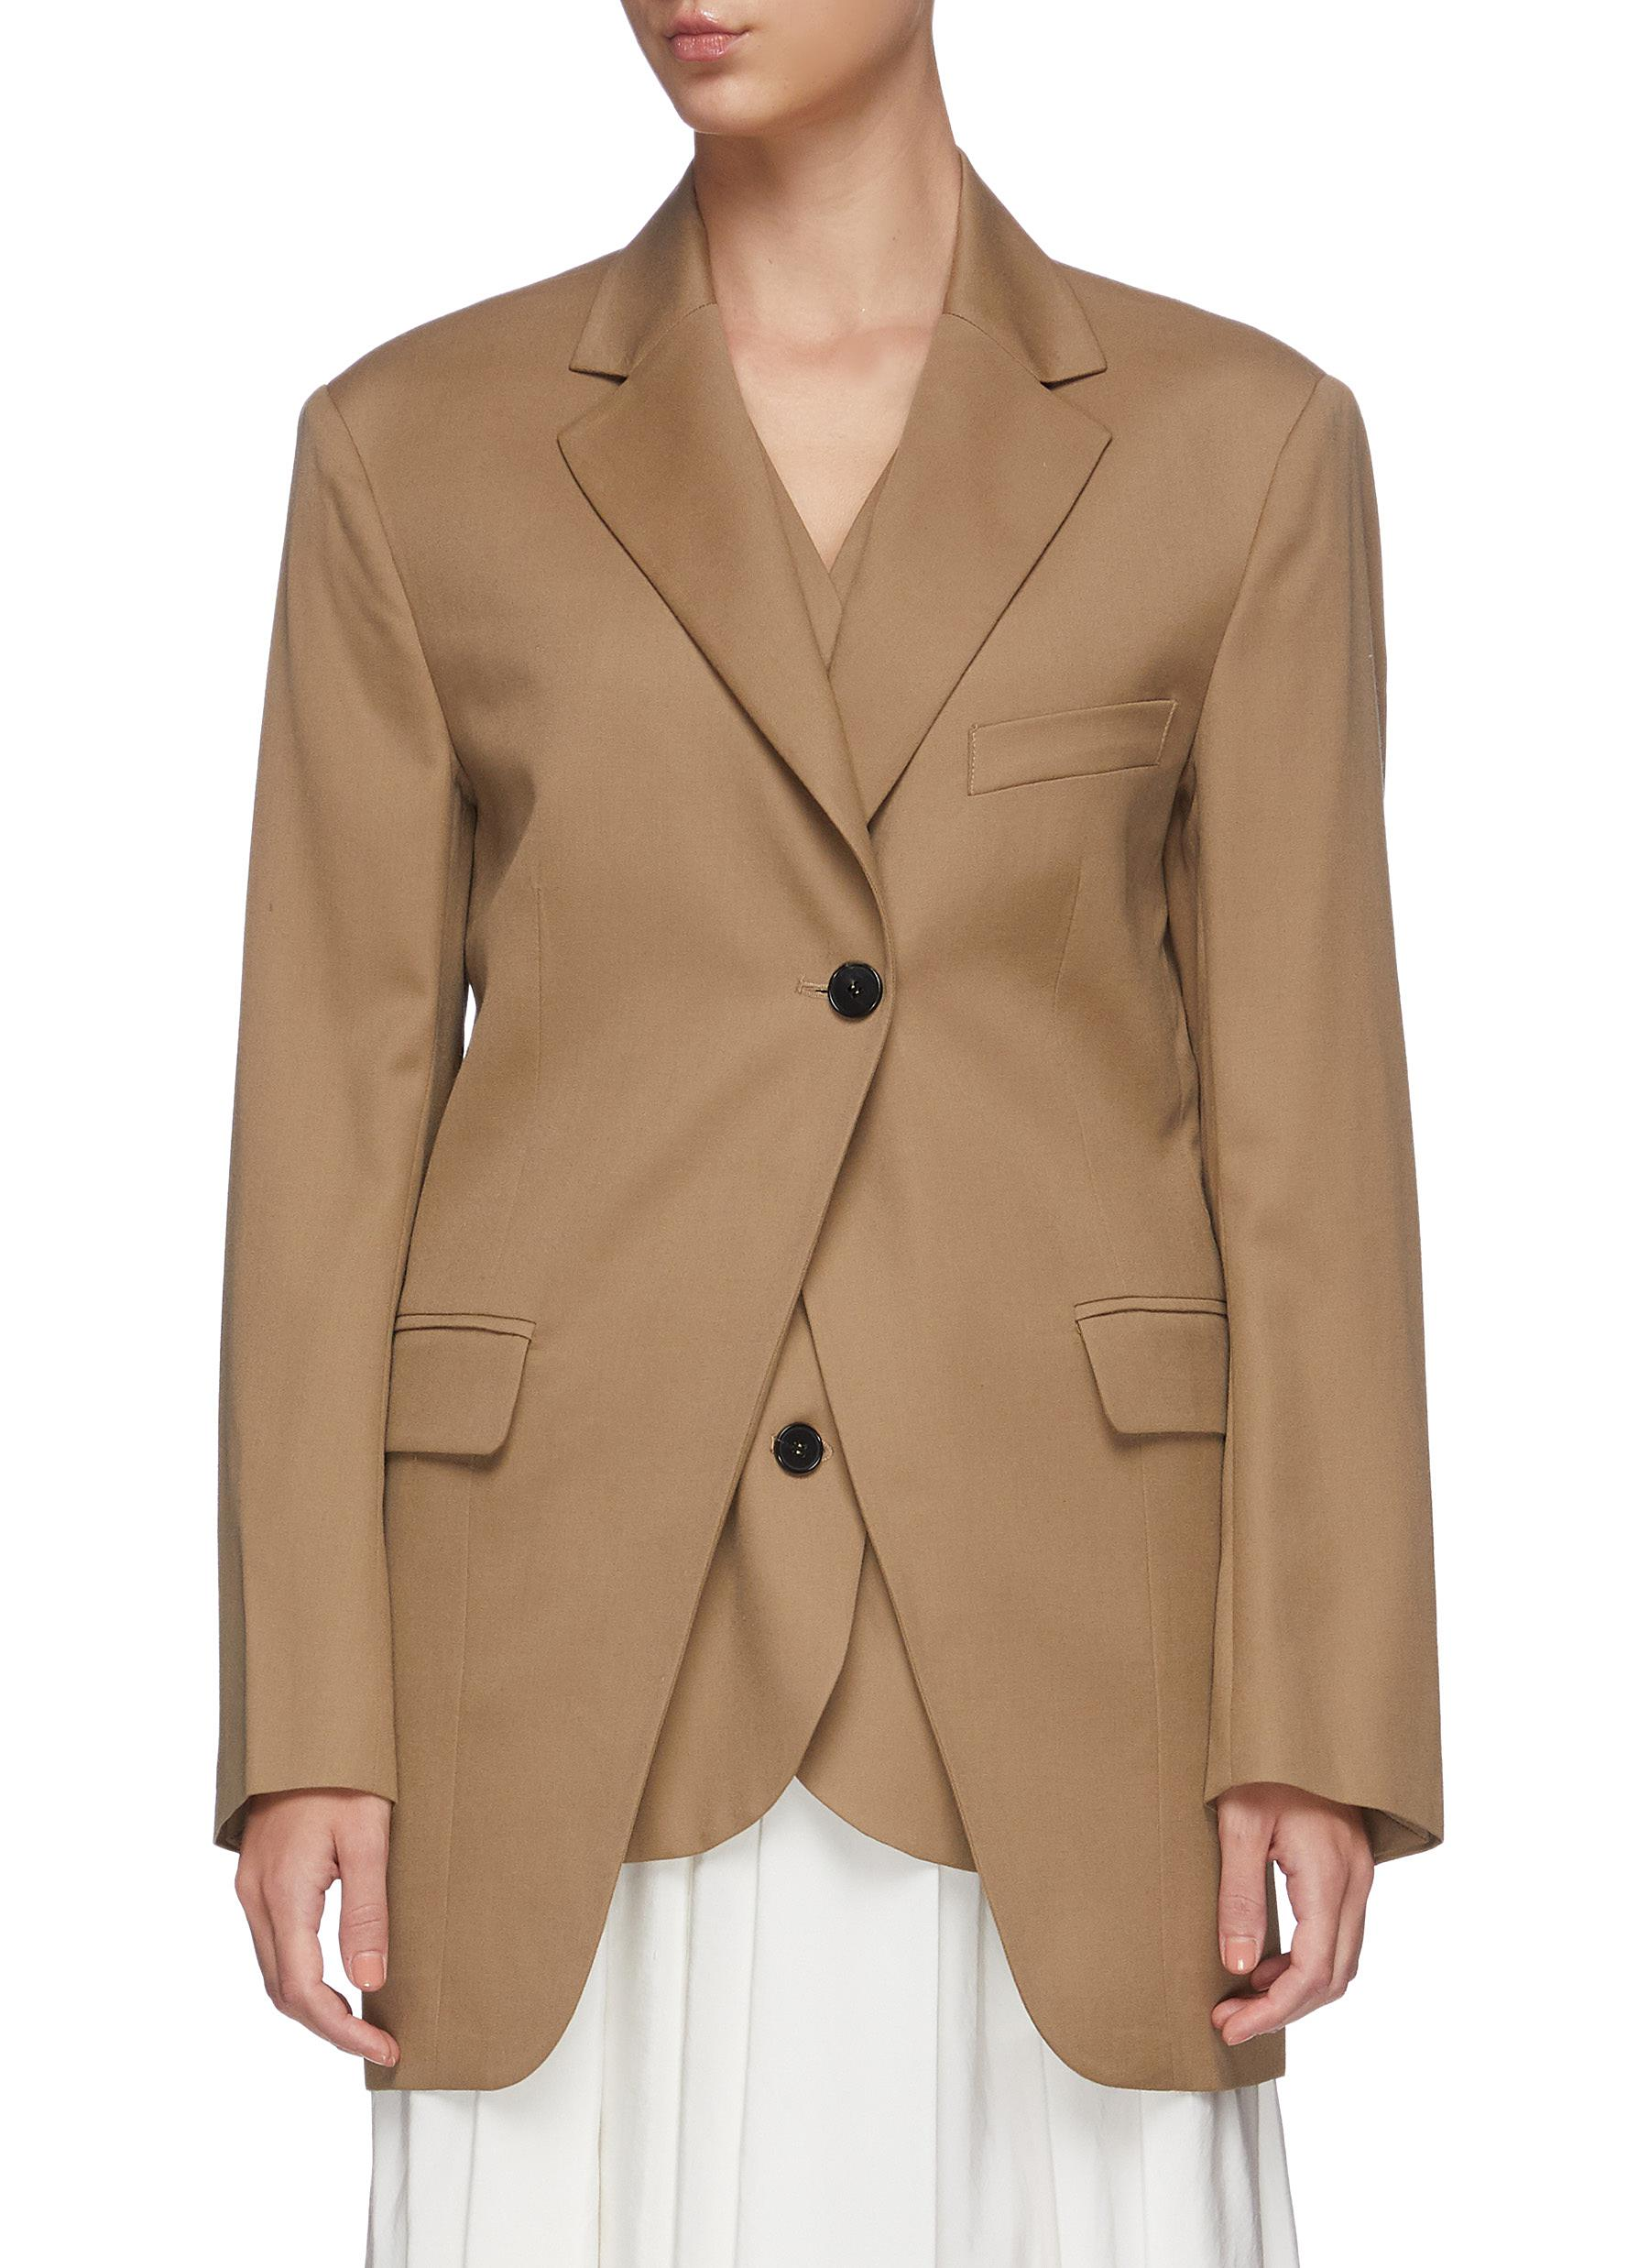 Low Classic SINGLE BREASTED BLAZER